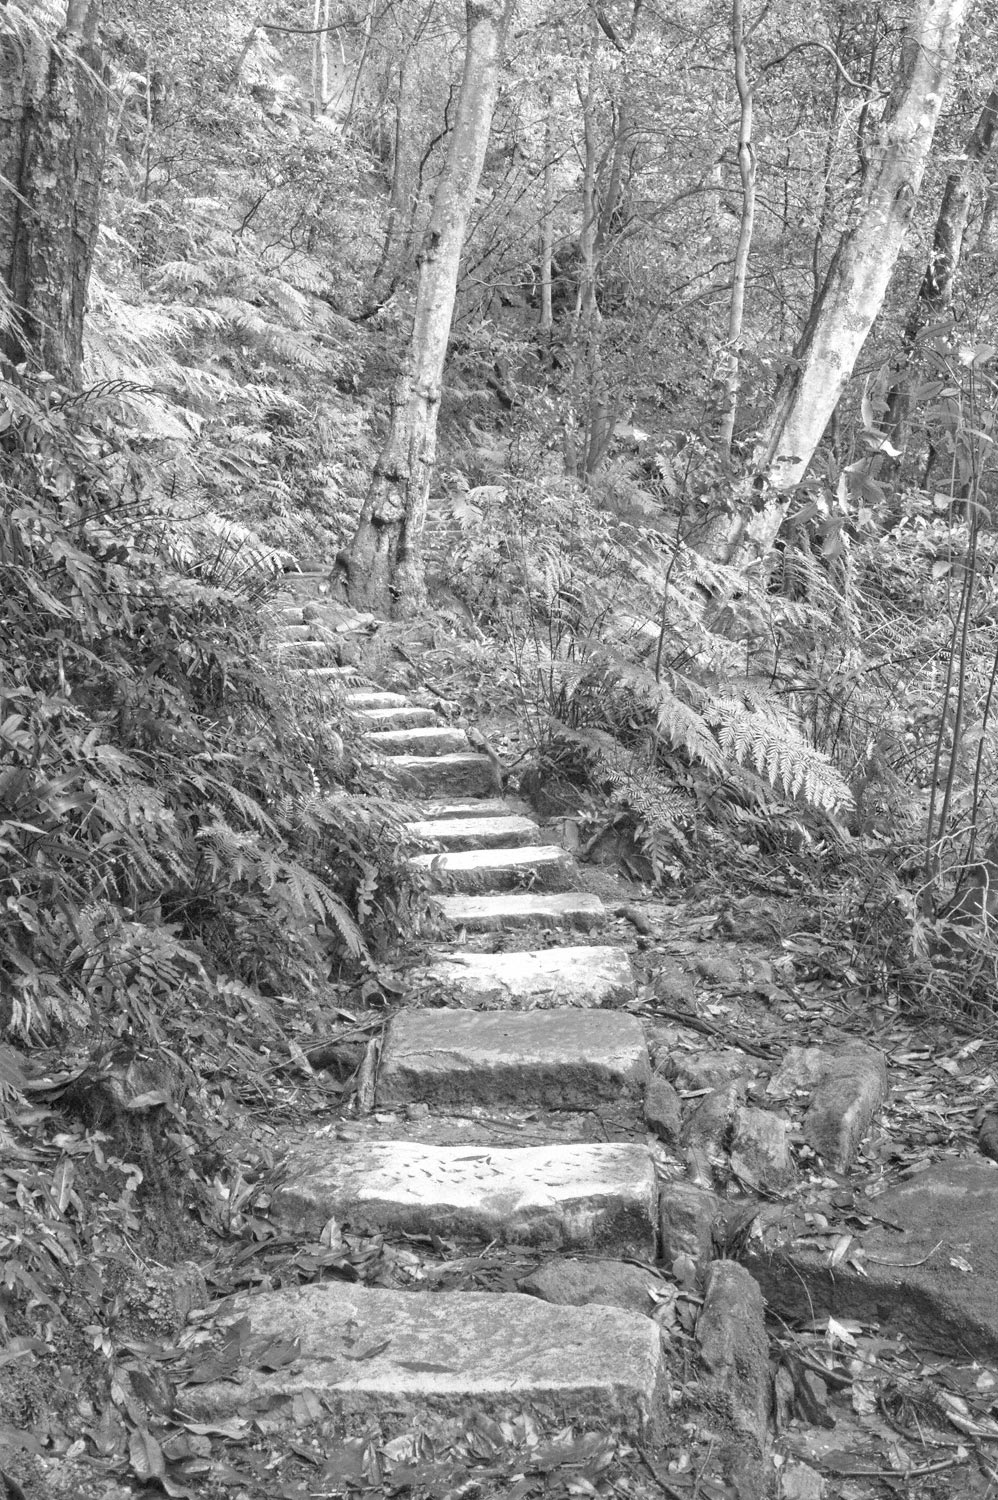 Warren-Hinder-LR-Sandstone-Path-National-Pass-Wentworth-Falls.jpg